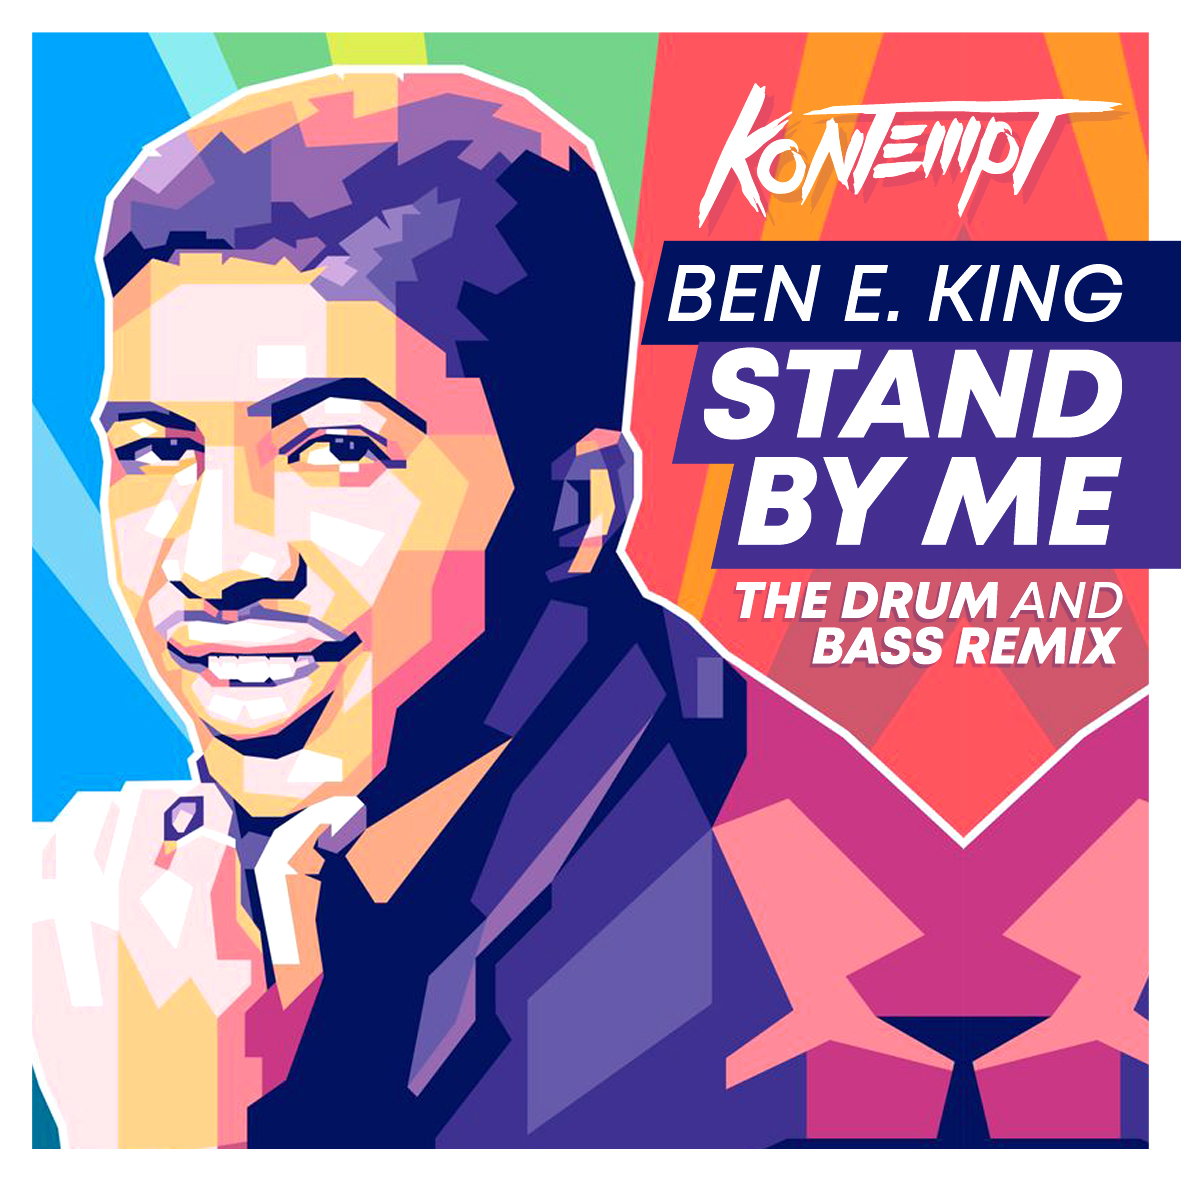 Ben E. King - Stand By Me (Drum and Bass Remix)